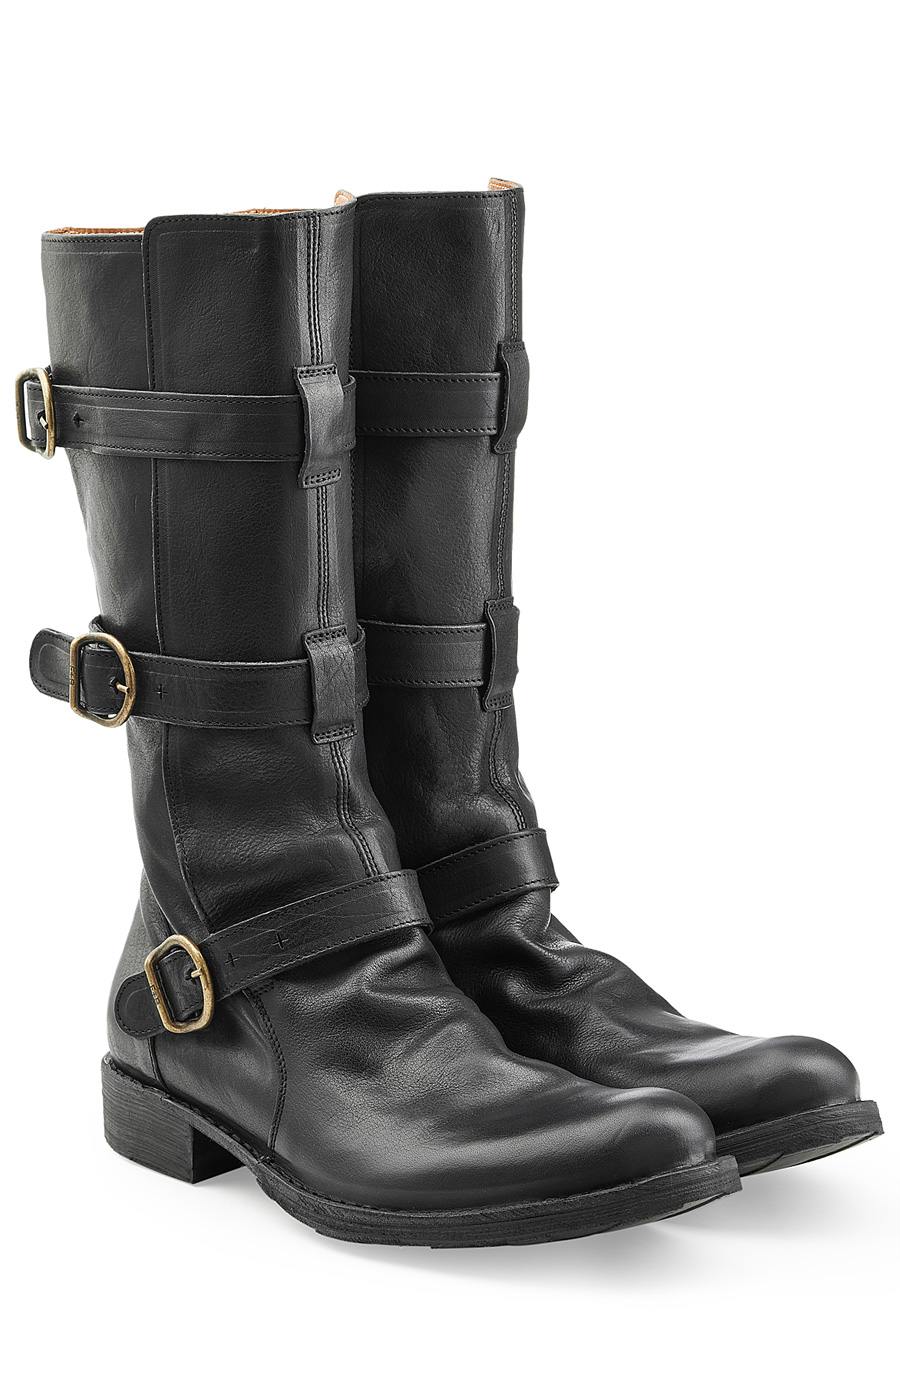 fiorentini baker eternity 7040 buckled leather boots. Black Bedroom Furniture Sets. Home Design Ideas